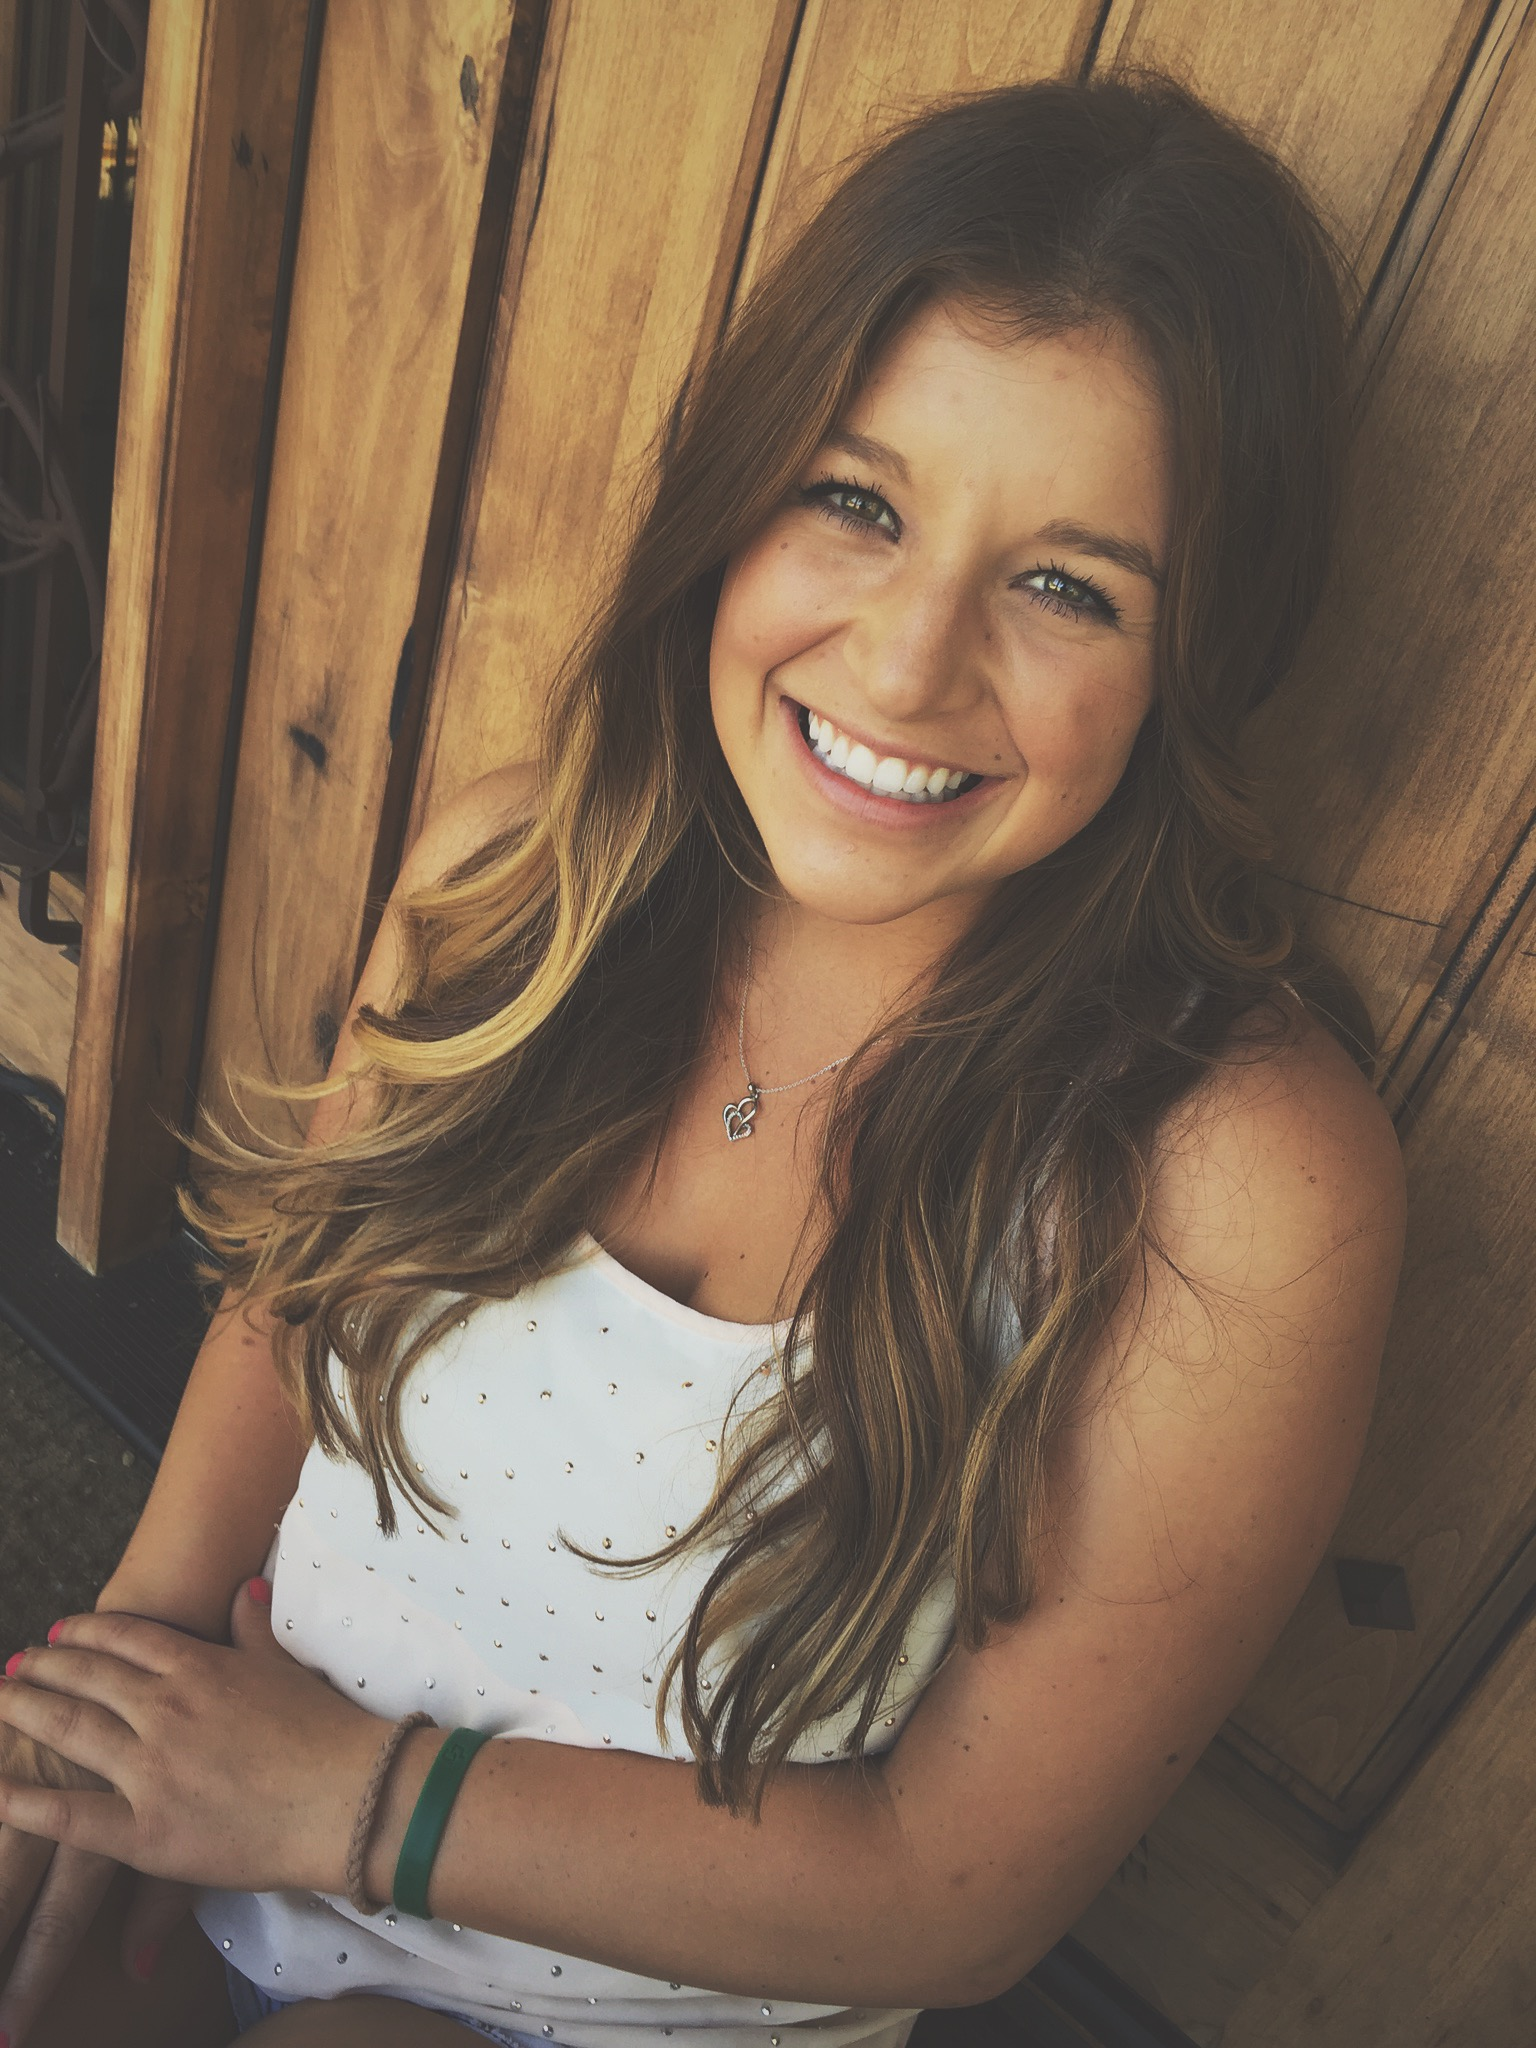 atascadero single girls Thank you for your interest in central coast singles we are an active group seeking to connect with other singles while enjoying all the beauty of the central coast.